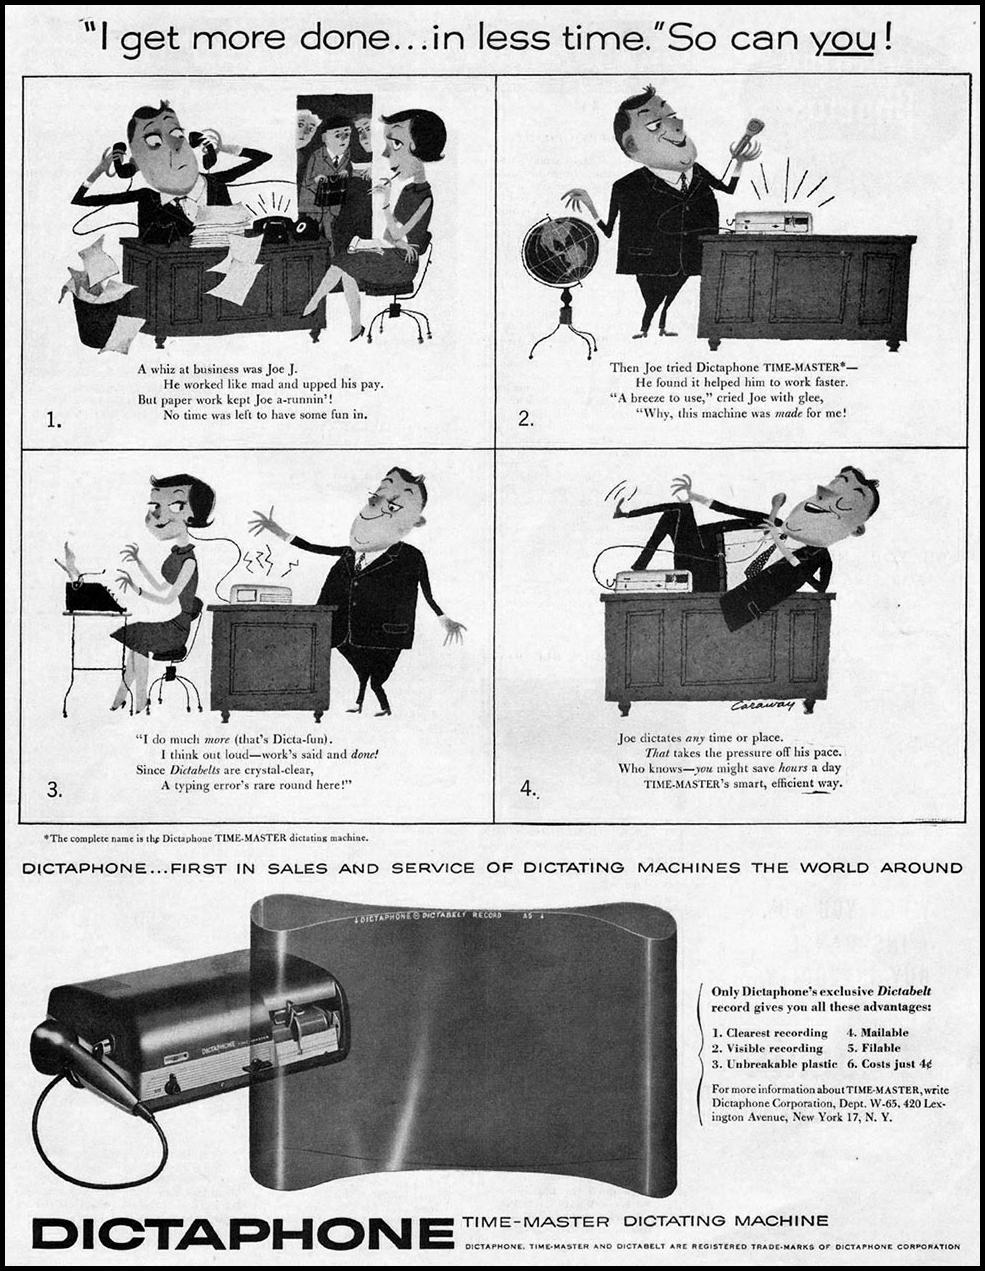 DICTAPHONE TIME-MASTER DICTATING MACHINE SATURDAY EVENING POST 06/04/1955 p. 123